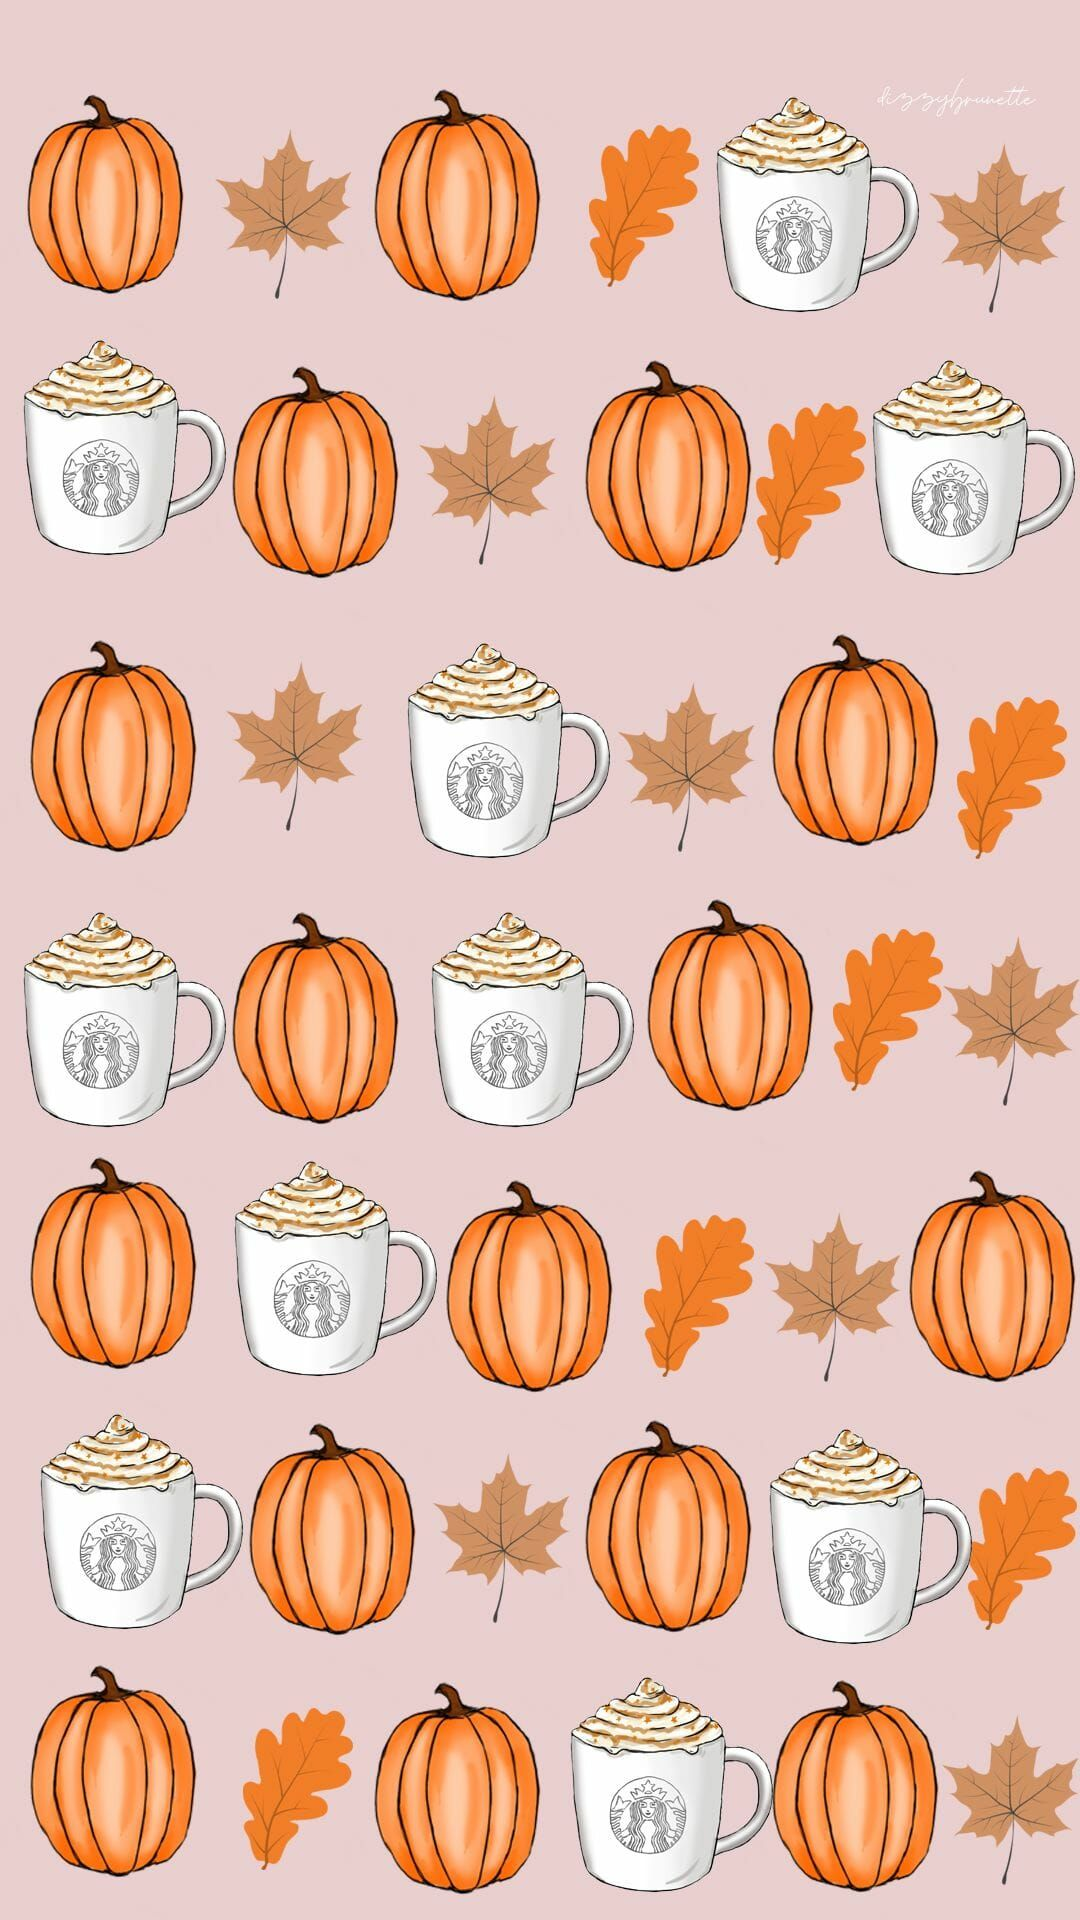 40 Free Amazing Fall Wallpaper Backgrounds For Iphone Iphone Wallpaper Fall Halloween Wallpaper Iphone Fall Wallpaper